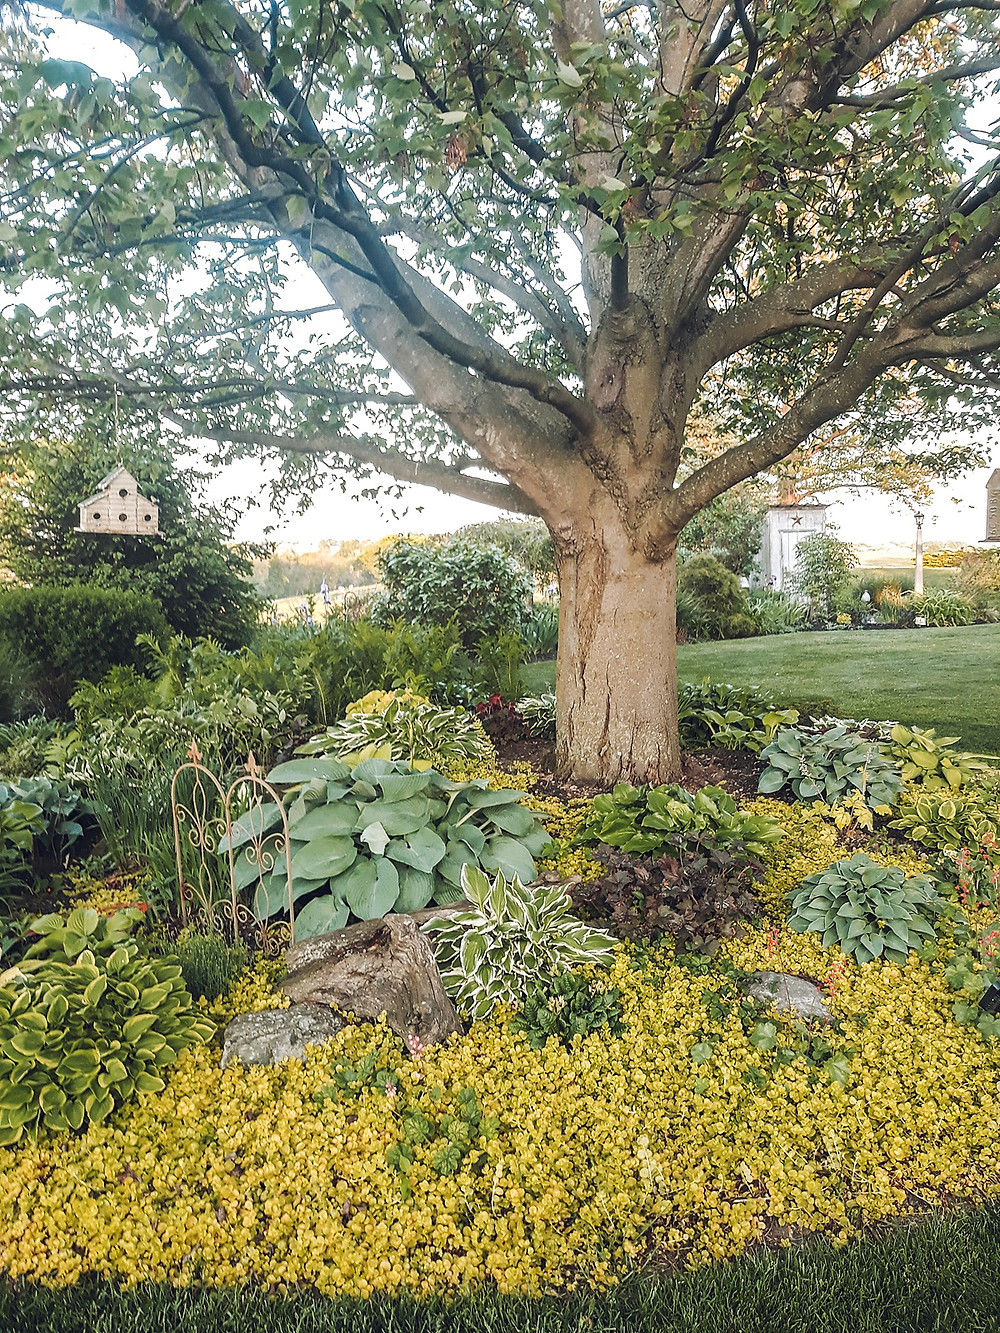 Gardening tips, back yard ideas, back yard gardening, landscaping, landscaping ideas, landscaping tips, how to landscape, how to make a flower bed, how to design a flower bed, how to choose plants, planting tips, planting ideas, garden styling, outdoor living, outdoor planting tips, how to start a garden, companion planting, gardening lessons, the rural legend